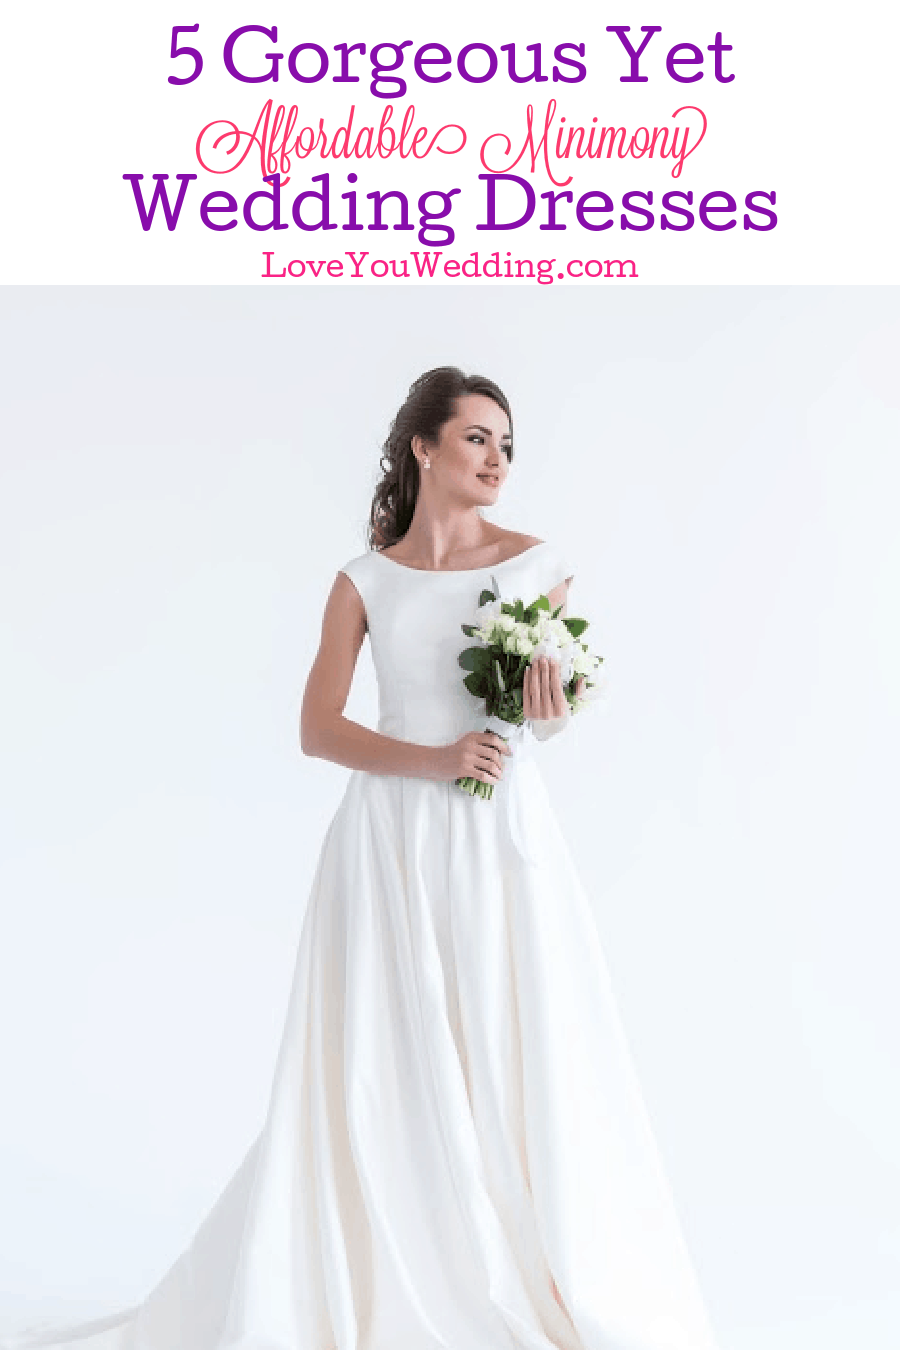 Looking for beautiful minimony wedding dresses to wear to your downsized ceremony? Check out 5 stunning yet affordable options!